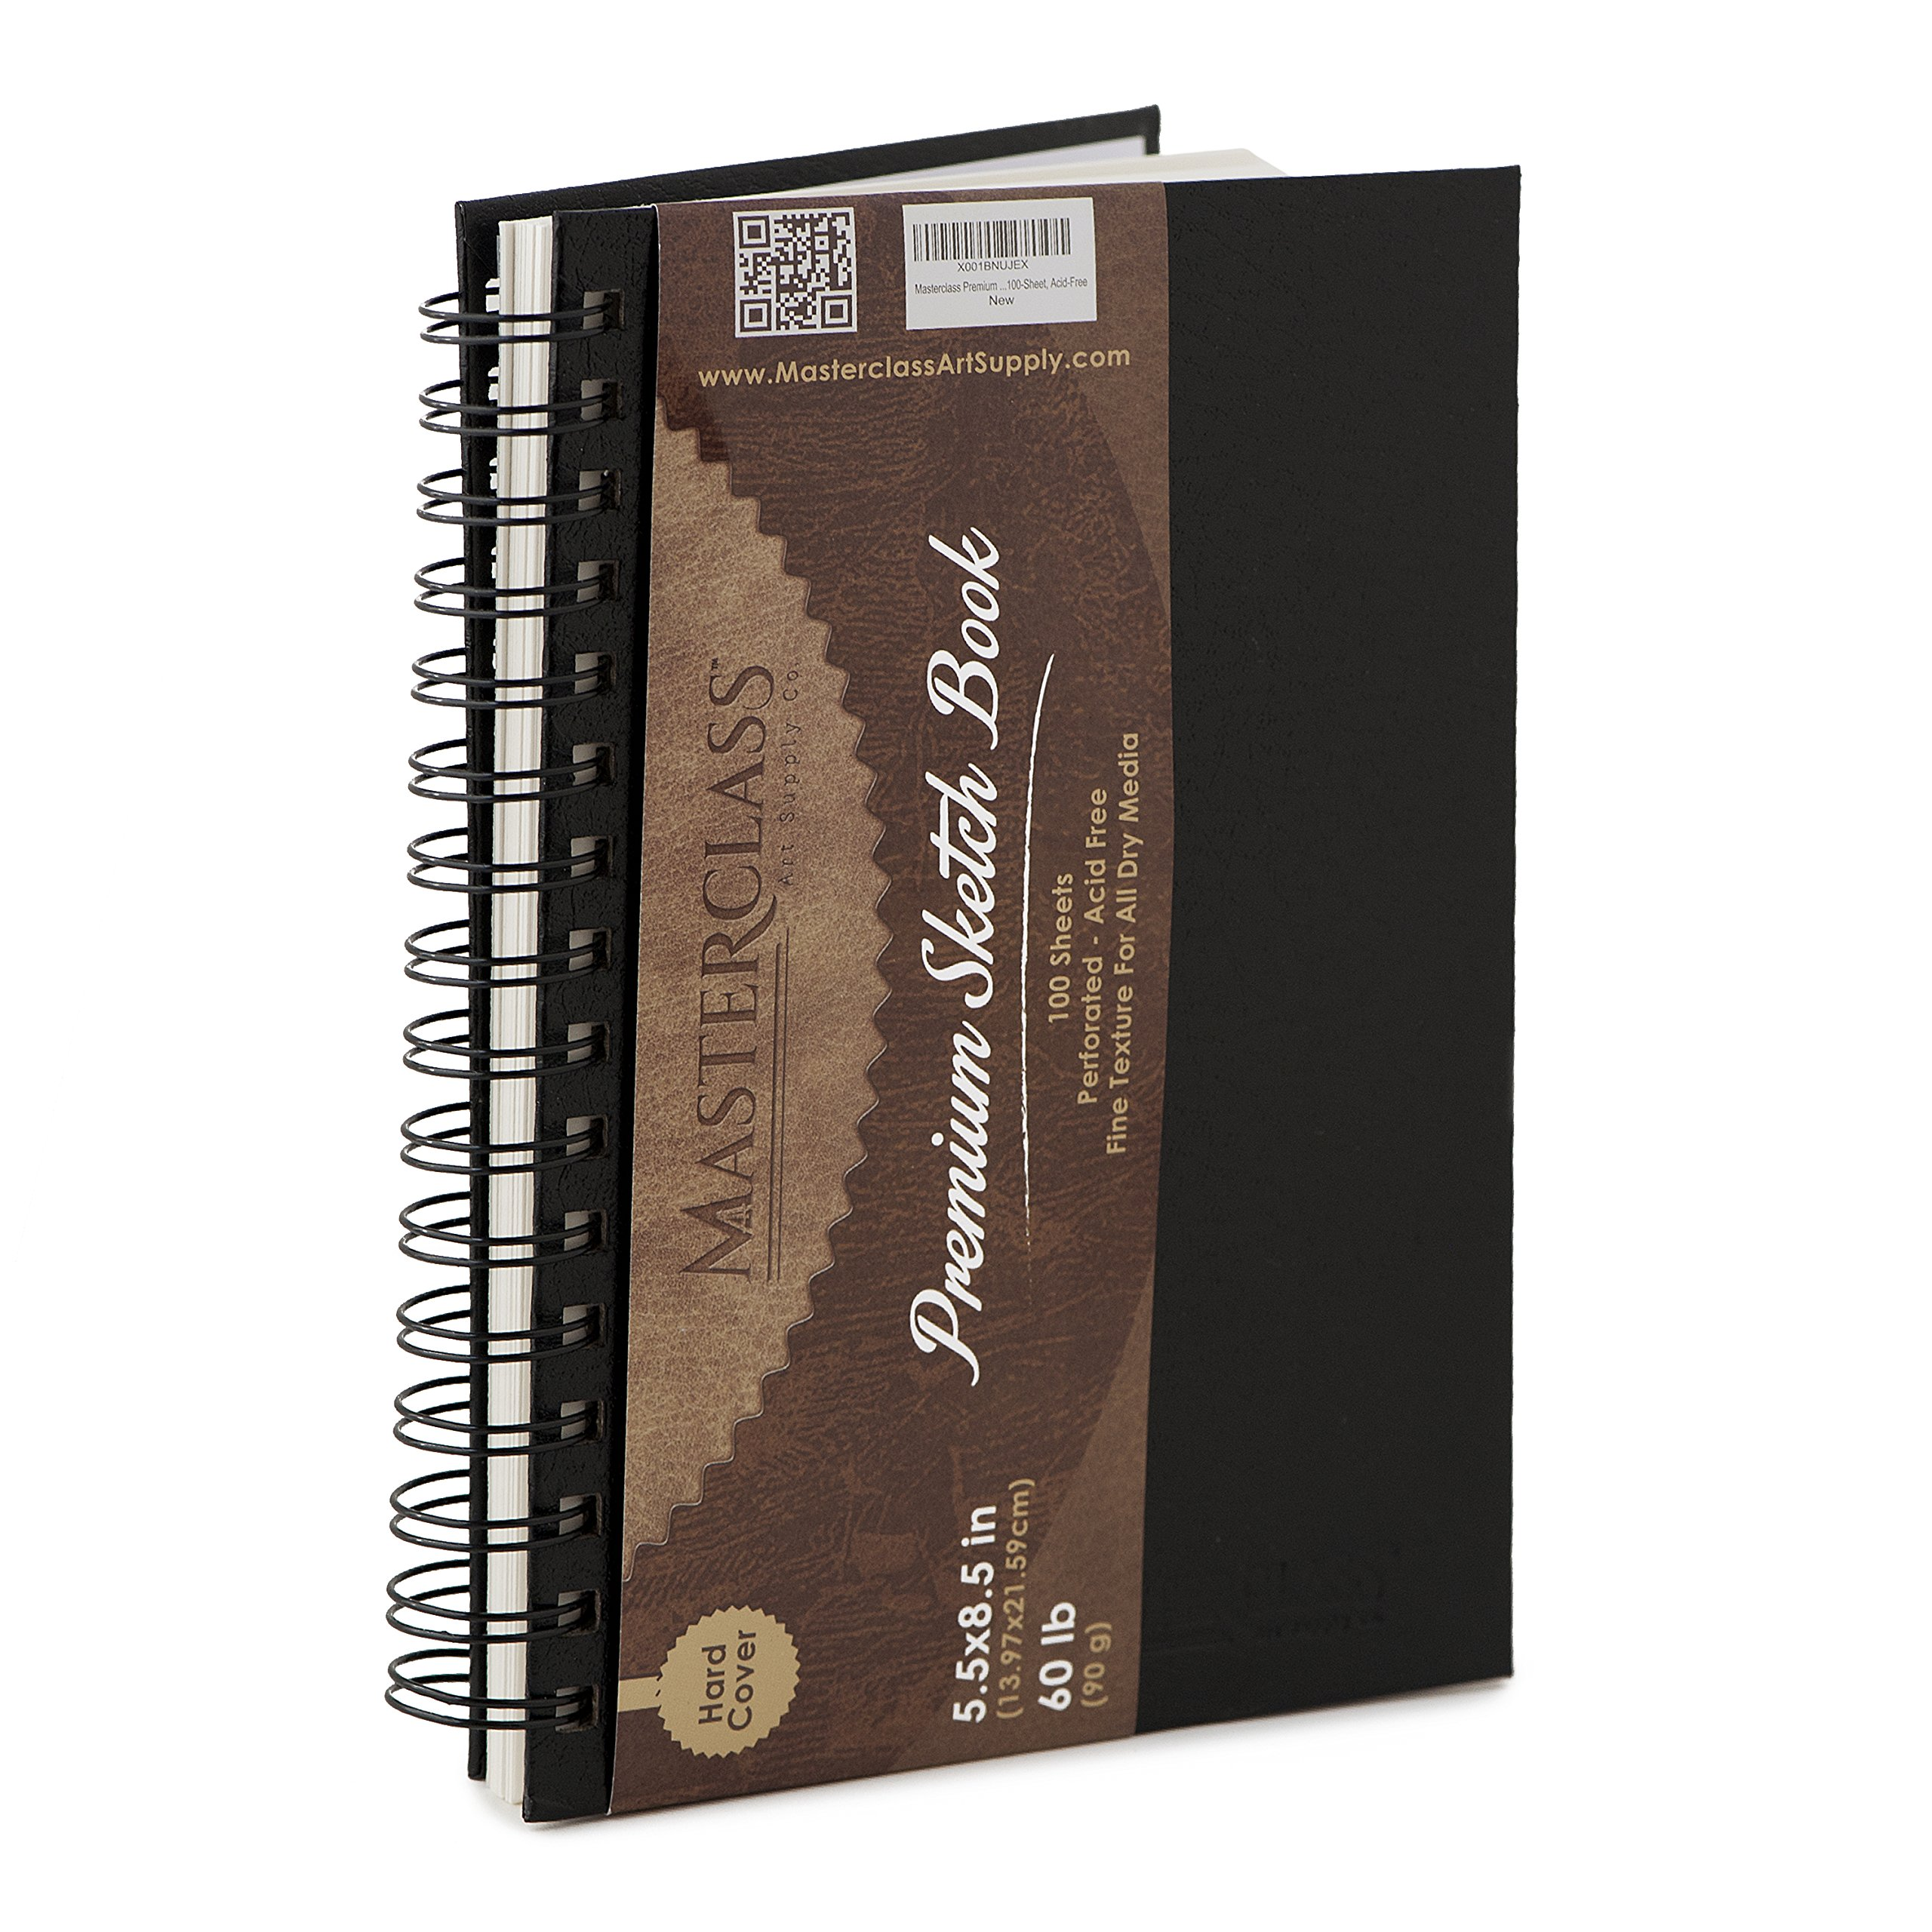 Masterclass Premium 5.5 Inch by 8 Inch Spiral Bound Hardcover Sketchbook, 100-Sheets, Acid-Free, Perfect Sketch Book For Traveling, Durable Cover And Binding Allow Your Drawing Pages To Lay Flat. ... by Masterclass Art Supply Co.